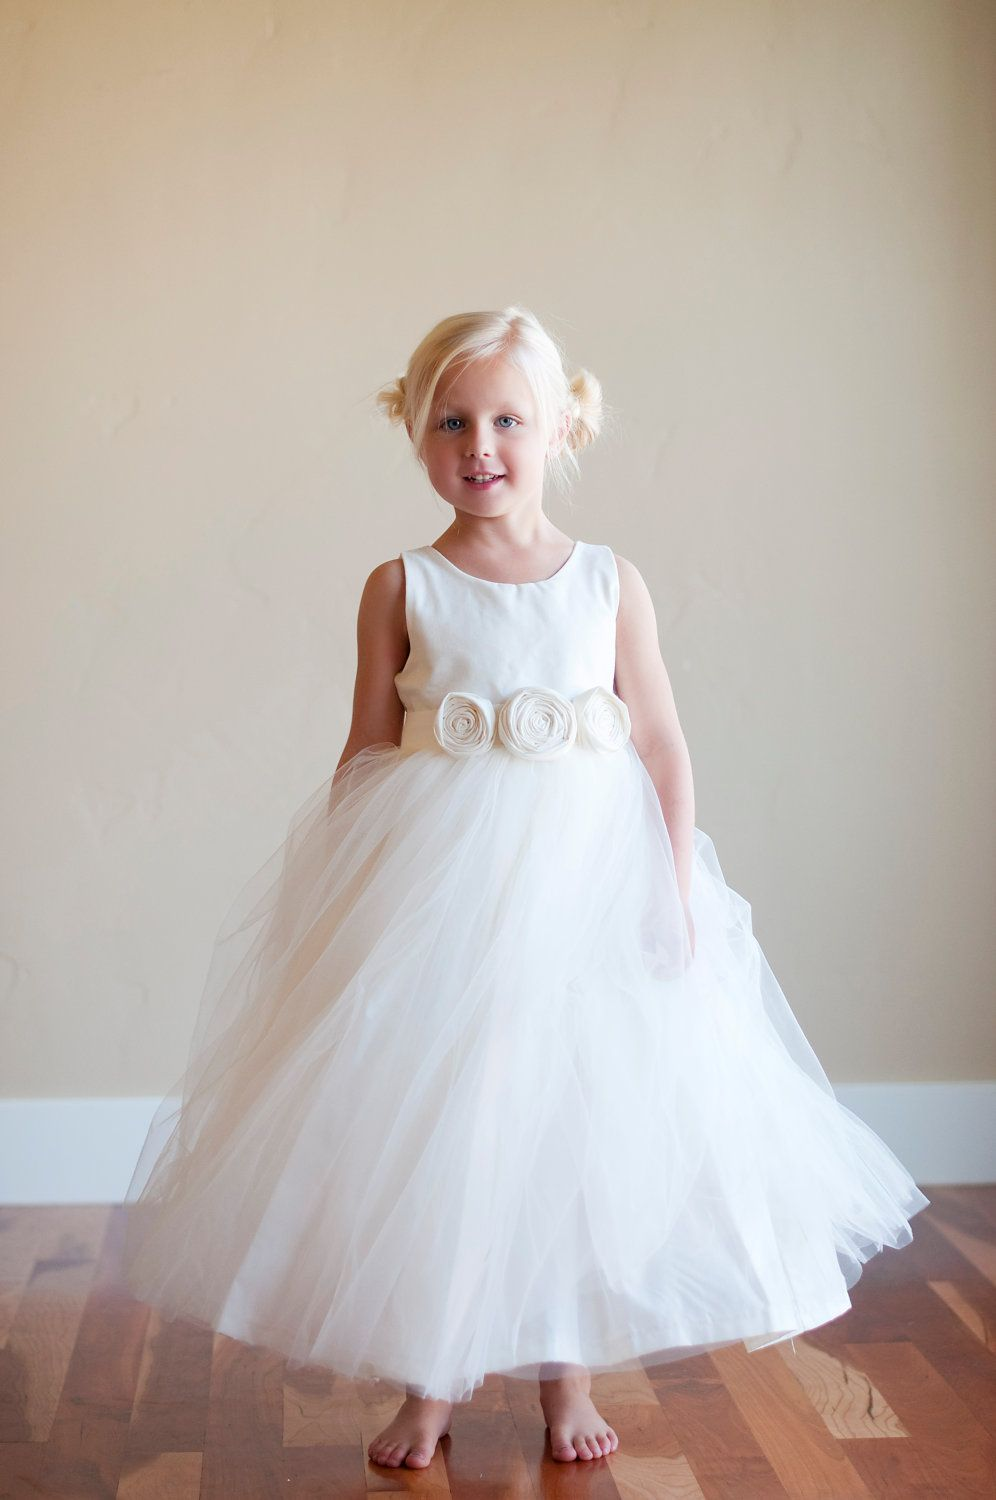 The Ivory Dress: White Flower Girl Dress,White Cotton Flower Girl ...